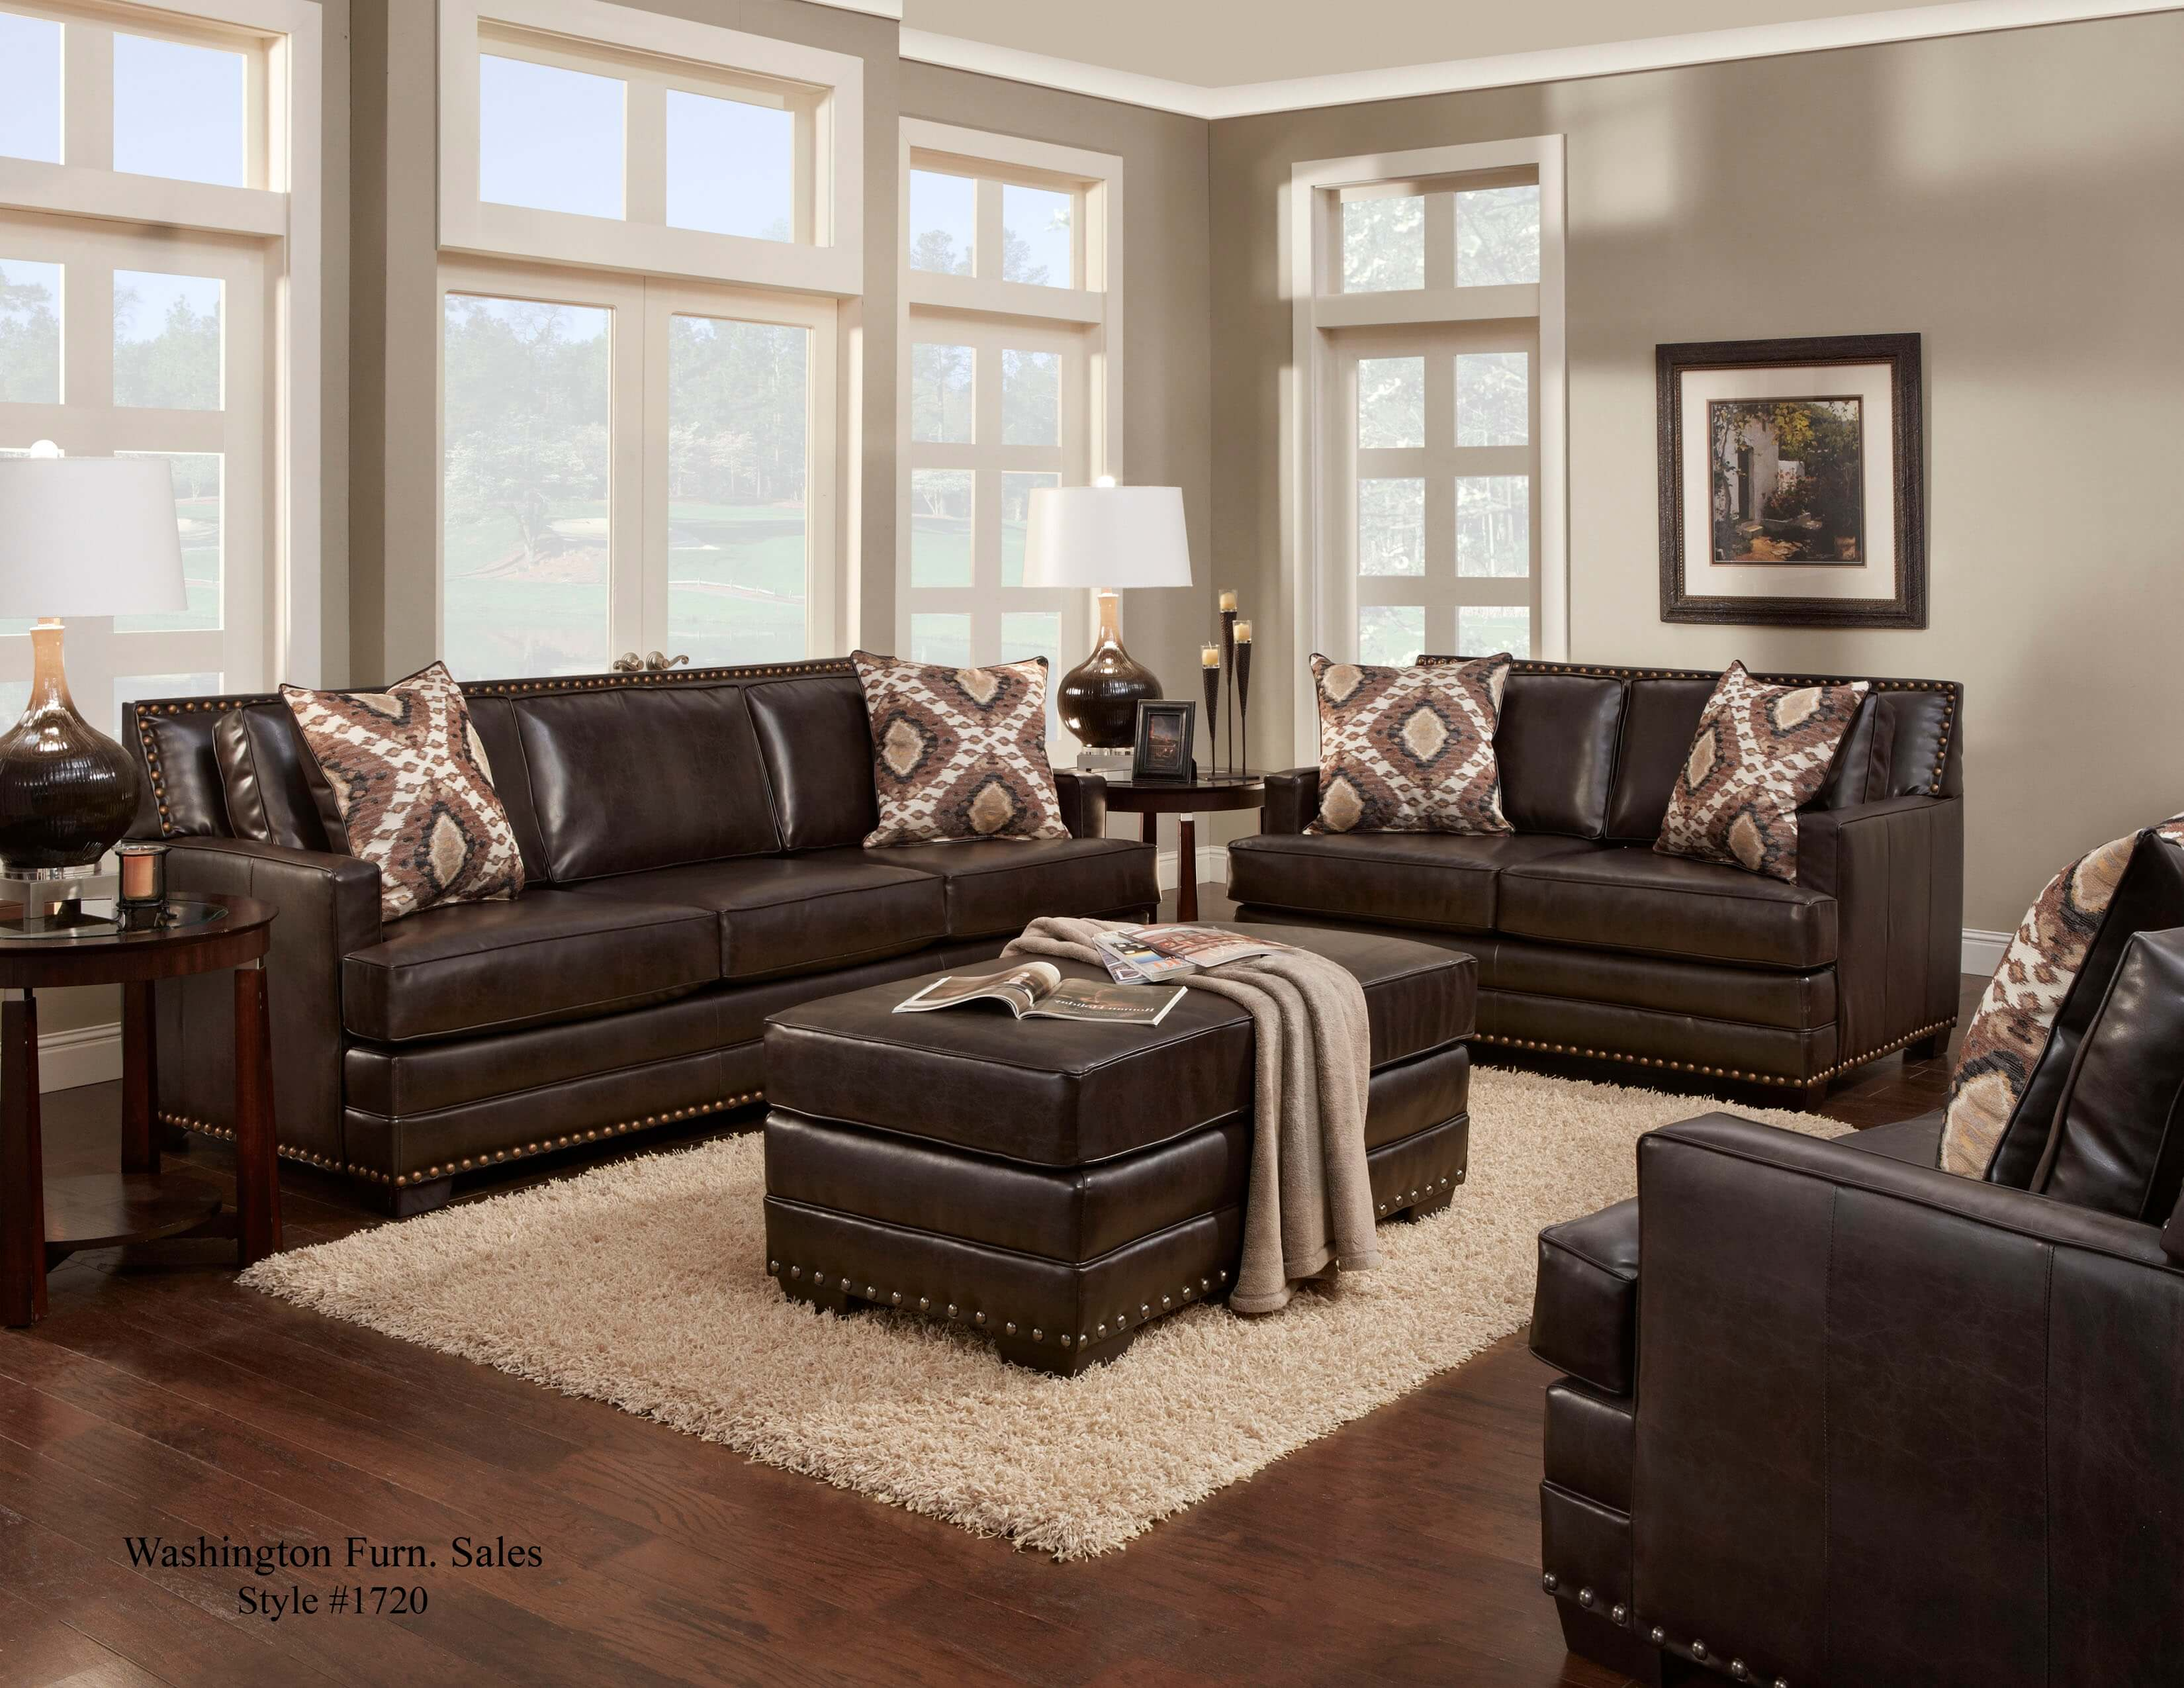 Poncho Saddle Sofa And Loveseat Leather Living Room Sets in 14 Some of the Coolest Initiatives of How to Craft Leather Living Room Sets